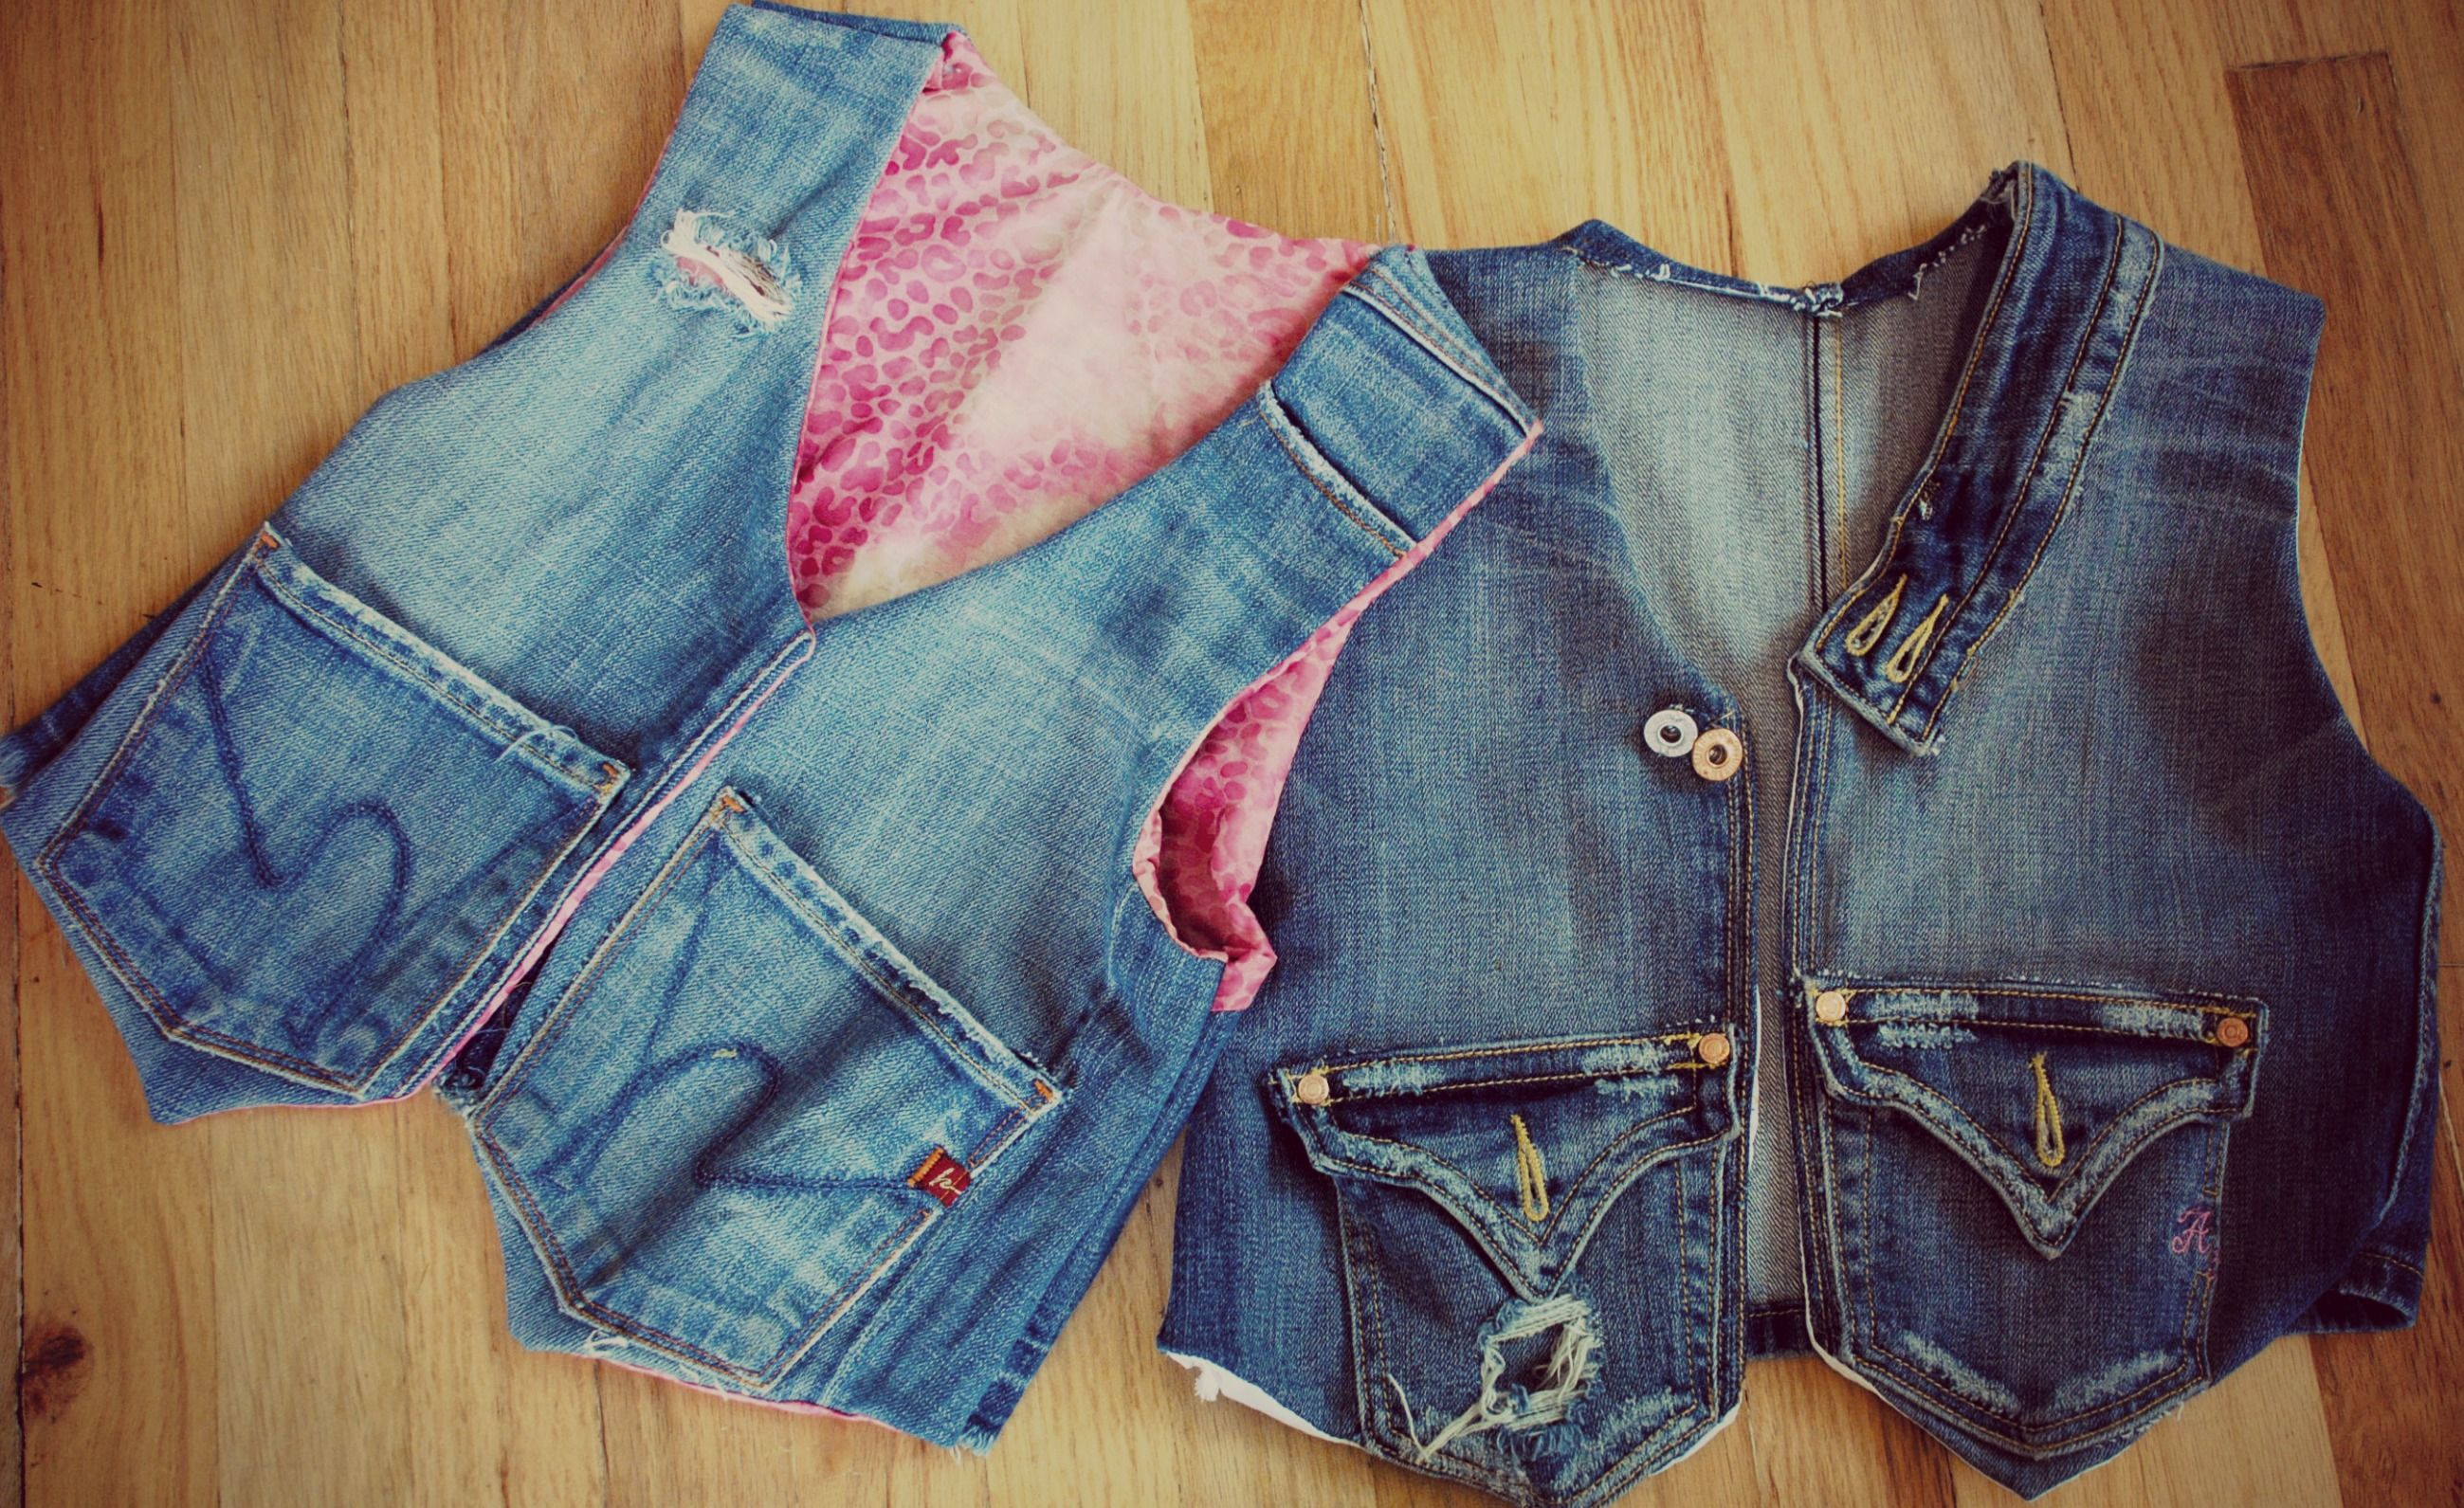 12 ideas for diy recycled old jeans diy craft projects for Old denim